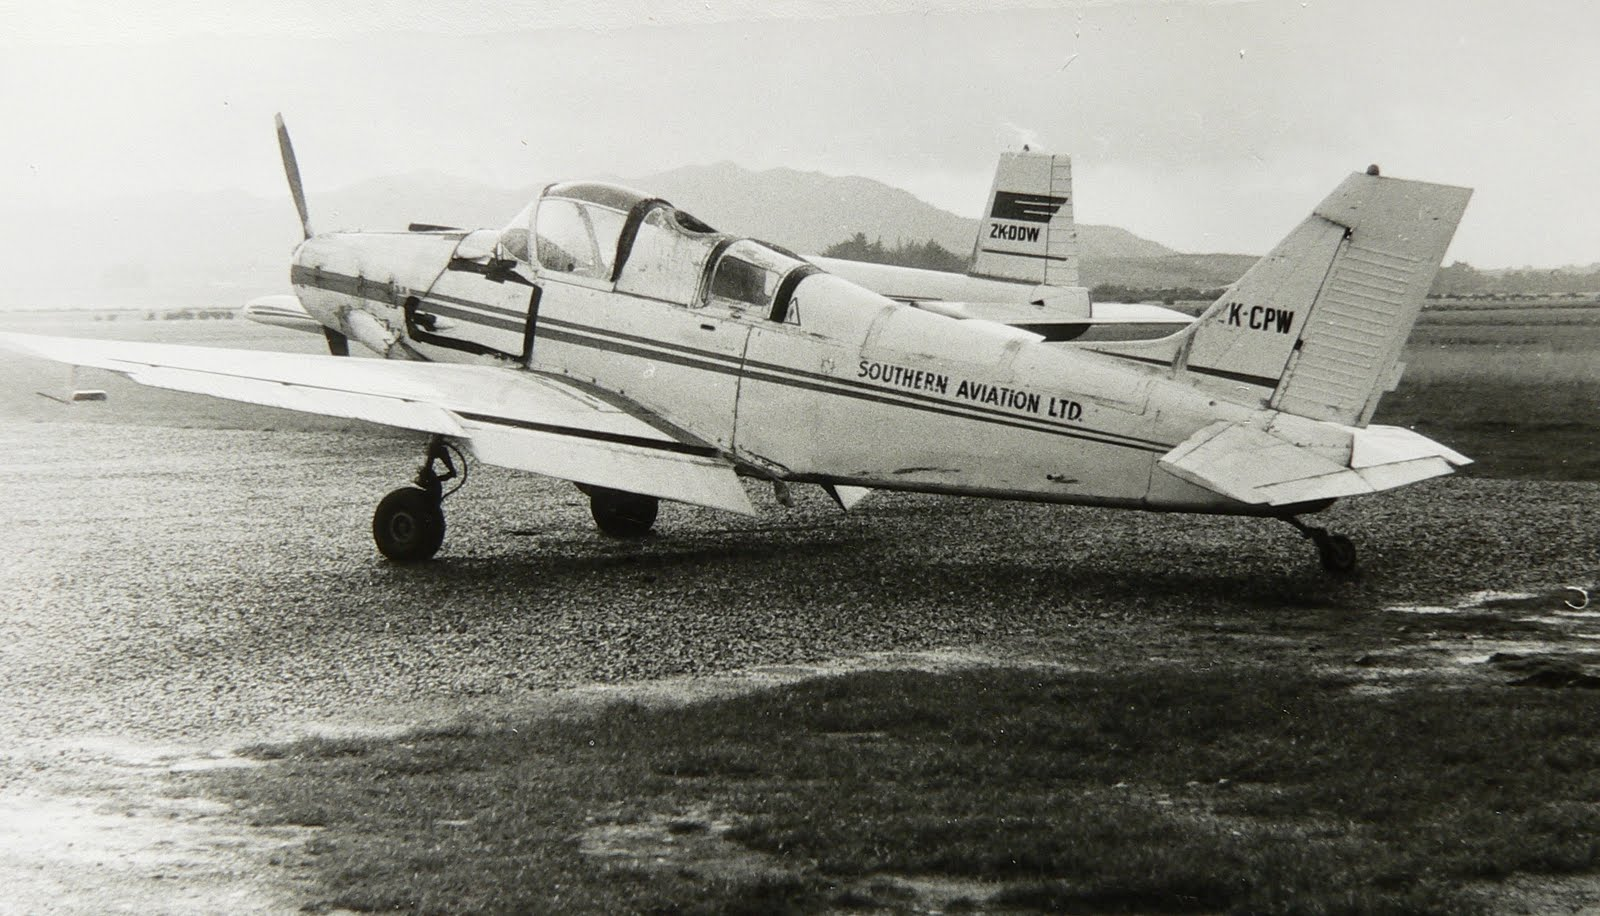 Yeoman Ya 1 Cropmaster 250r Zk Cpw Design Plane 04 Pesawat Remote Kontrol Briefly The Was An Australian And Built Aircraft Being A Specialised Agricultural Using Modified Fuselages From Cac Ca 6